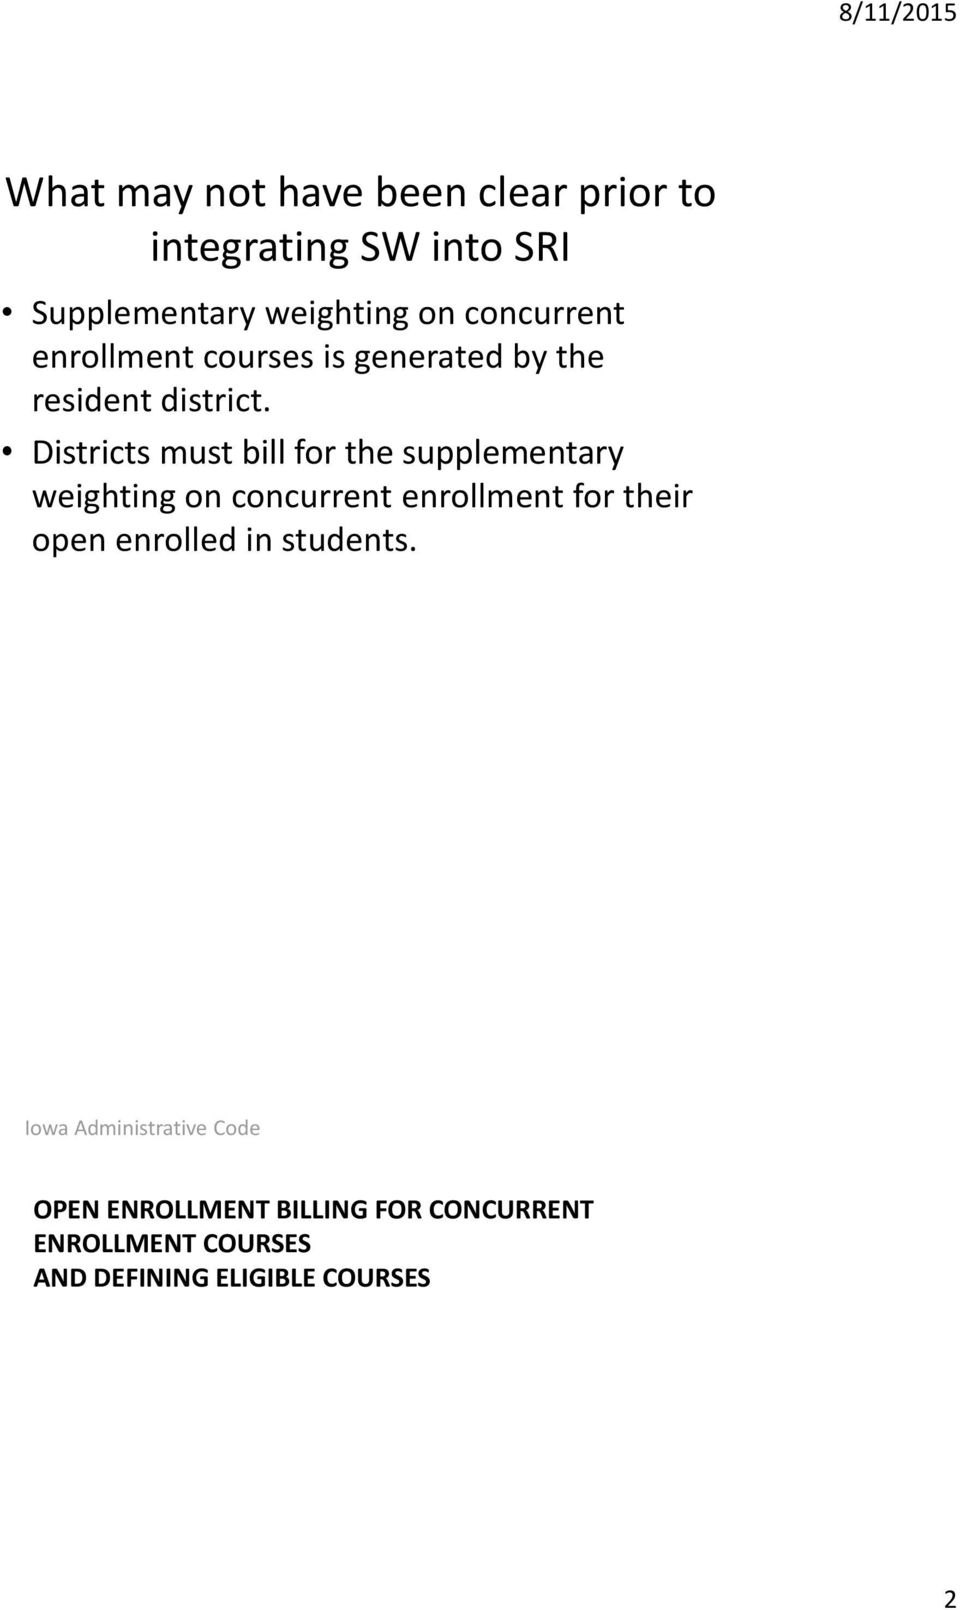 Districts must bill for the supplementary weighting on concurrent enrollment for their open